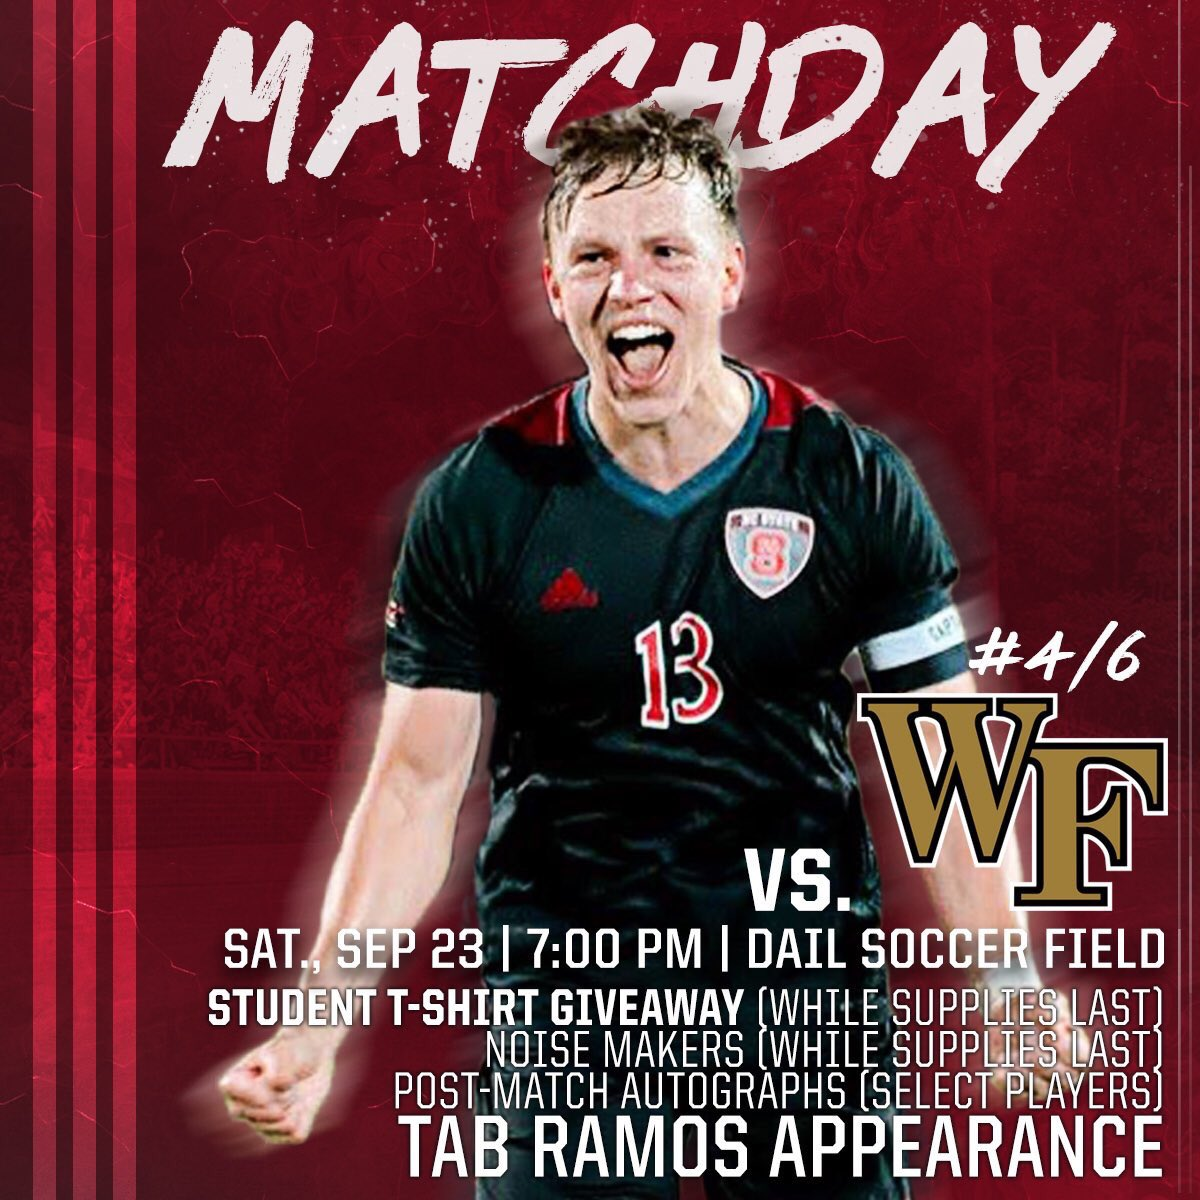 #WPN, we&#39;re not done! Let&#39;s  PACK the Dail as @PackMensSoccer takes on No. 4 Wake Forest at 7 PM!  #NeverAlone <br>http://pic.twitter.com/G5CPIxkOpI